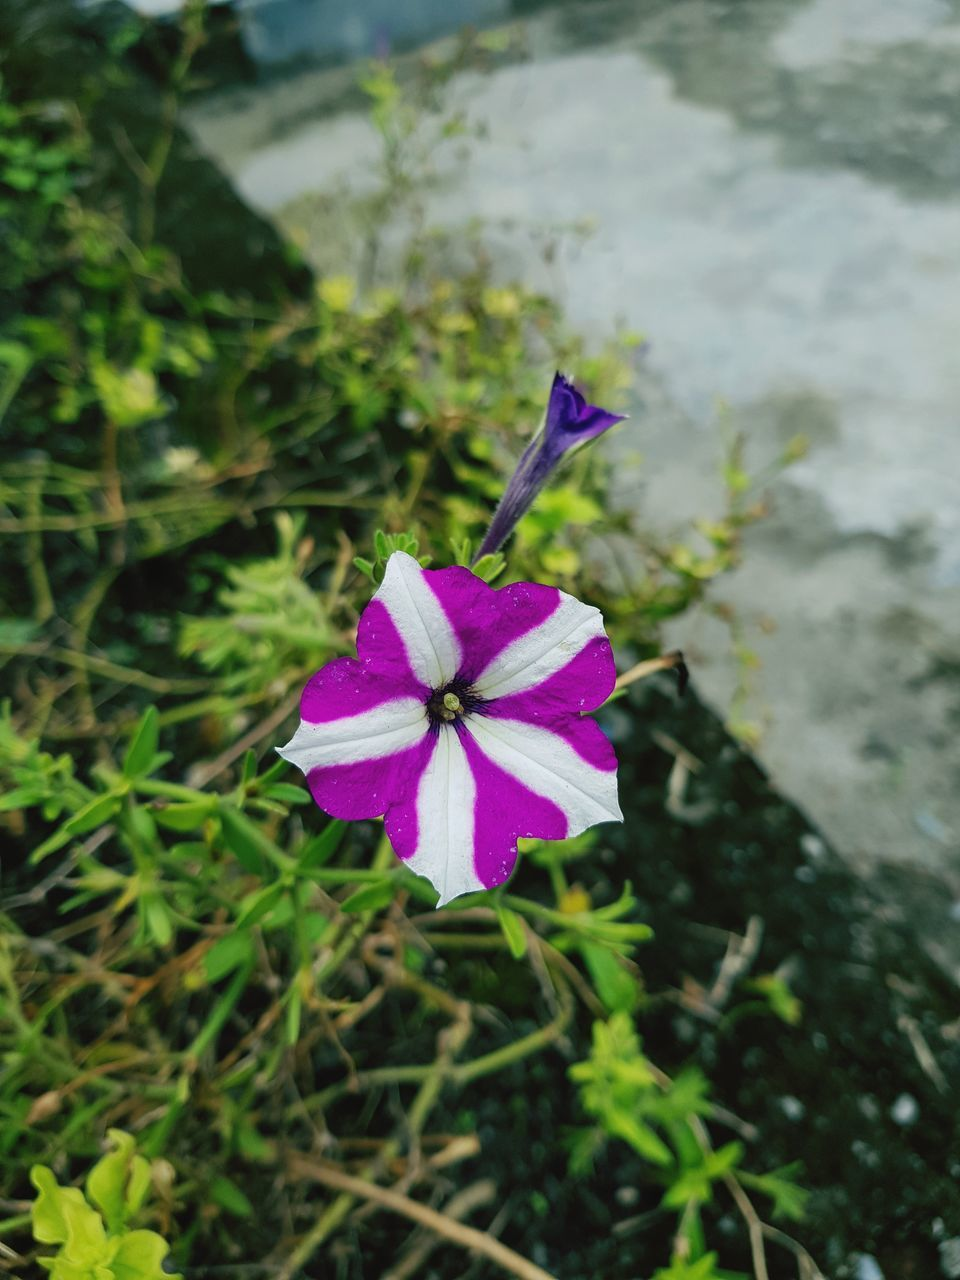 flower, petal, purple, growth, fragility, nature, beauty in nature, flower head, freshness, plant, day, blooming, pink color, green color, high angle view, no people, outdoors, focus on foreground, close-up, periwinkle, petunia